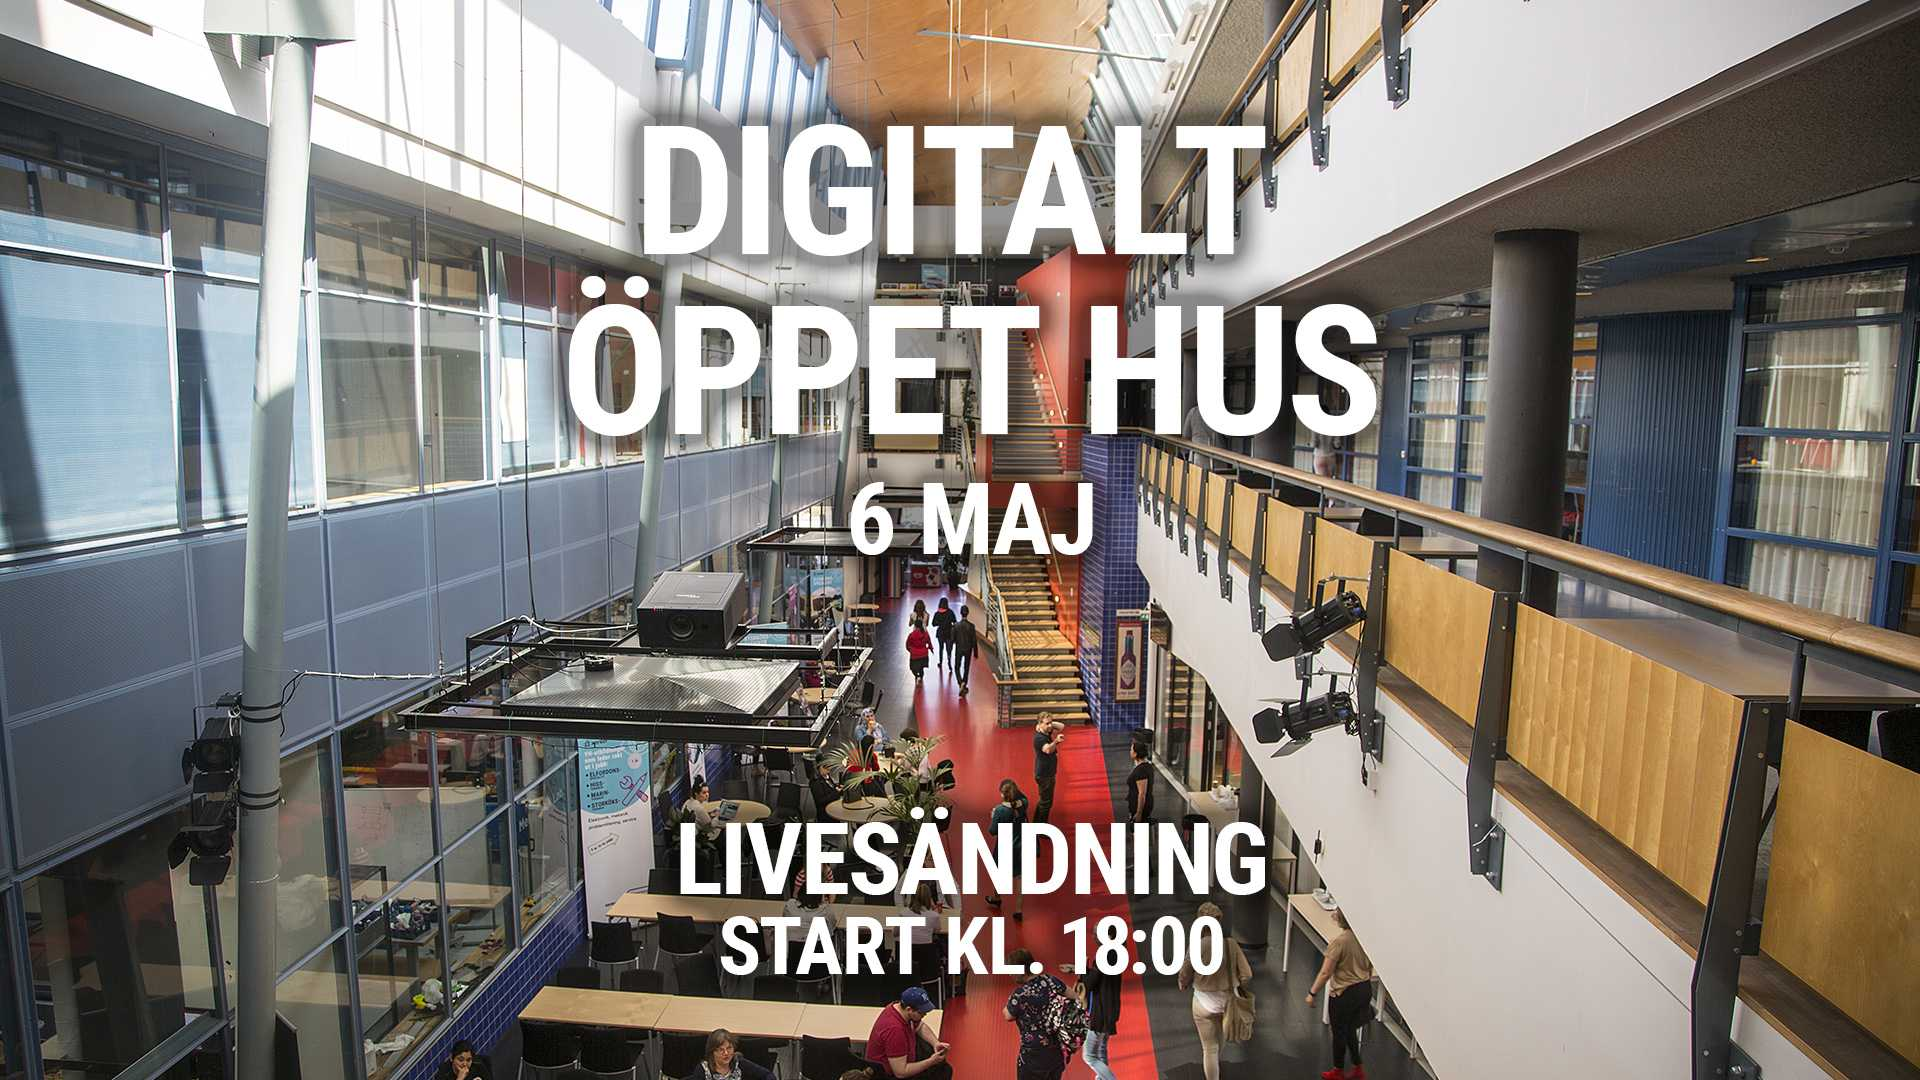 Digitalt Öppet Hus 6 maj på Xenter